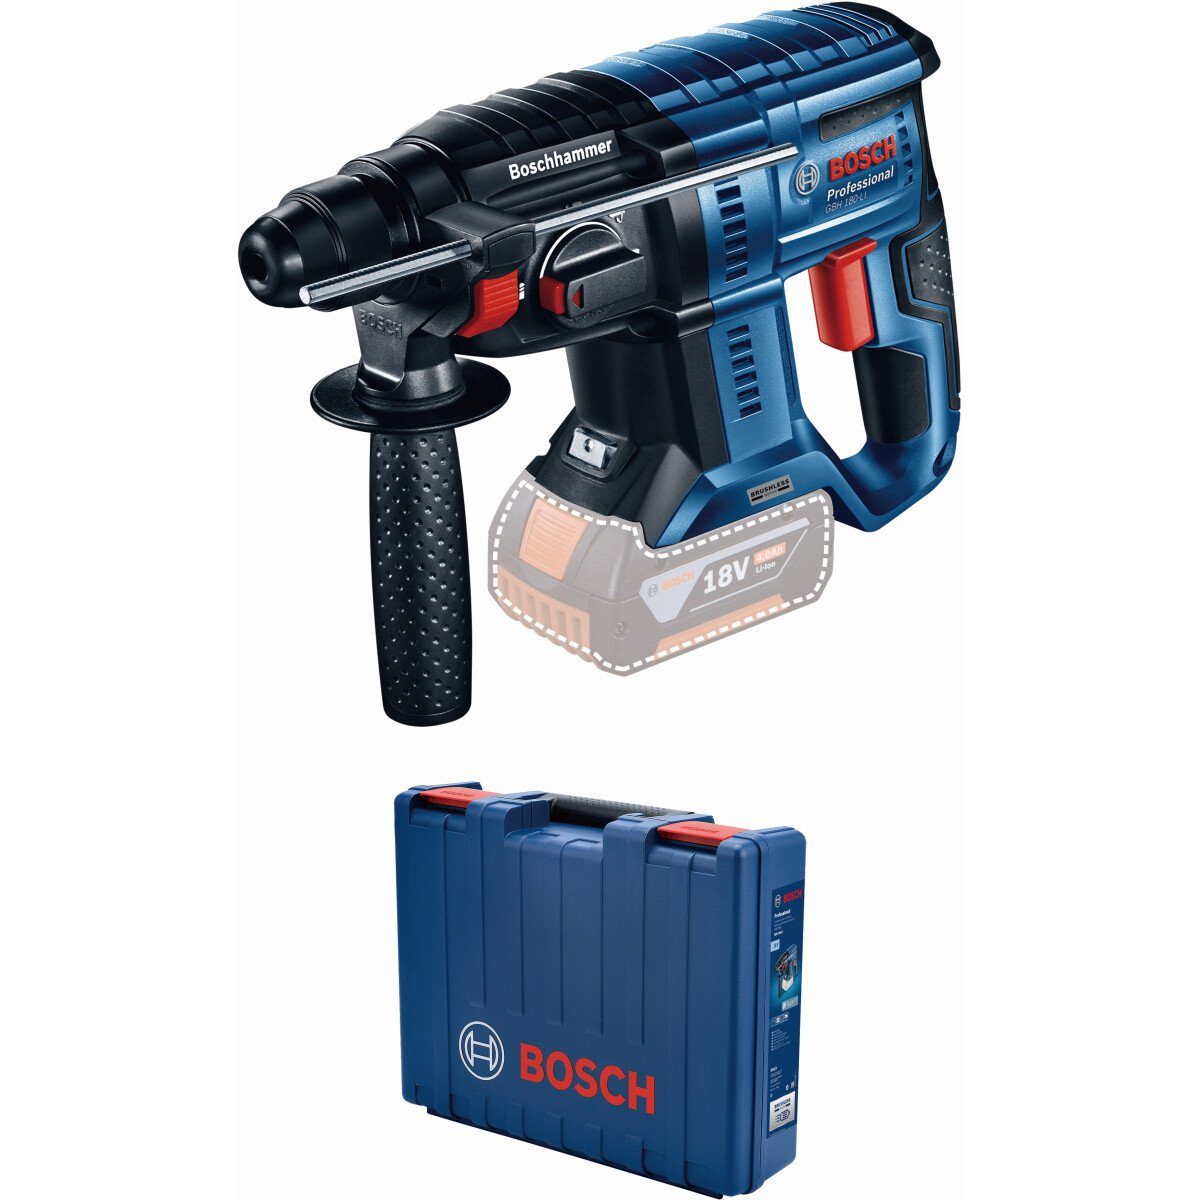 Bosch GBH 18 V-21CG 18v Body Only BRUSHLESS SDS-Plus Hammer in L-Boxx